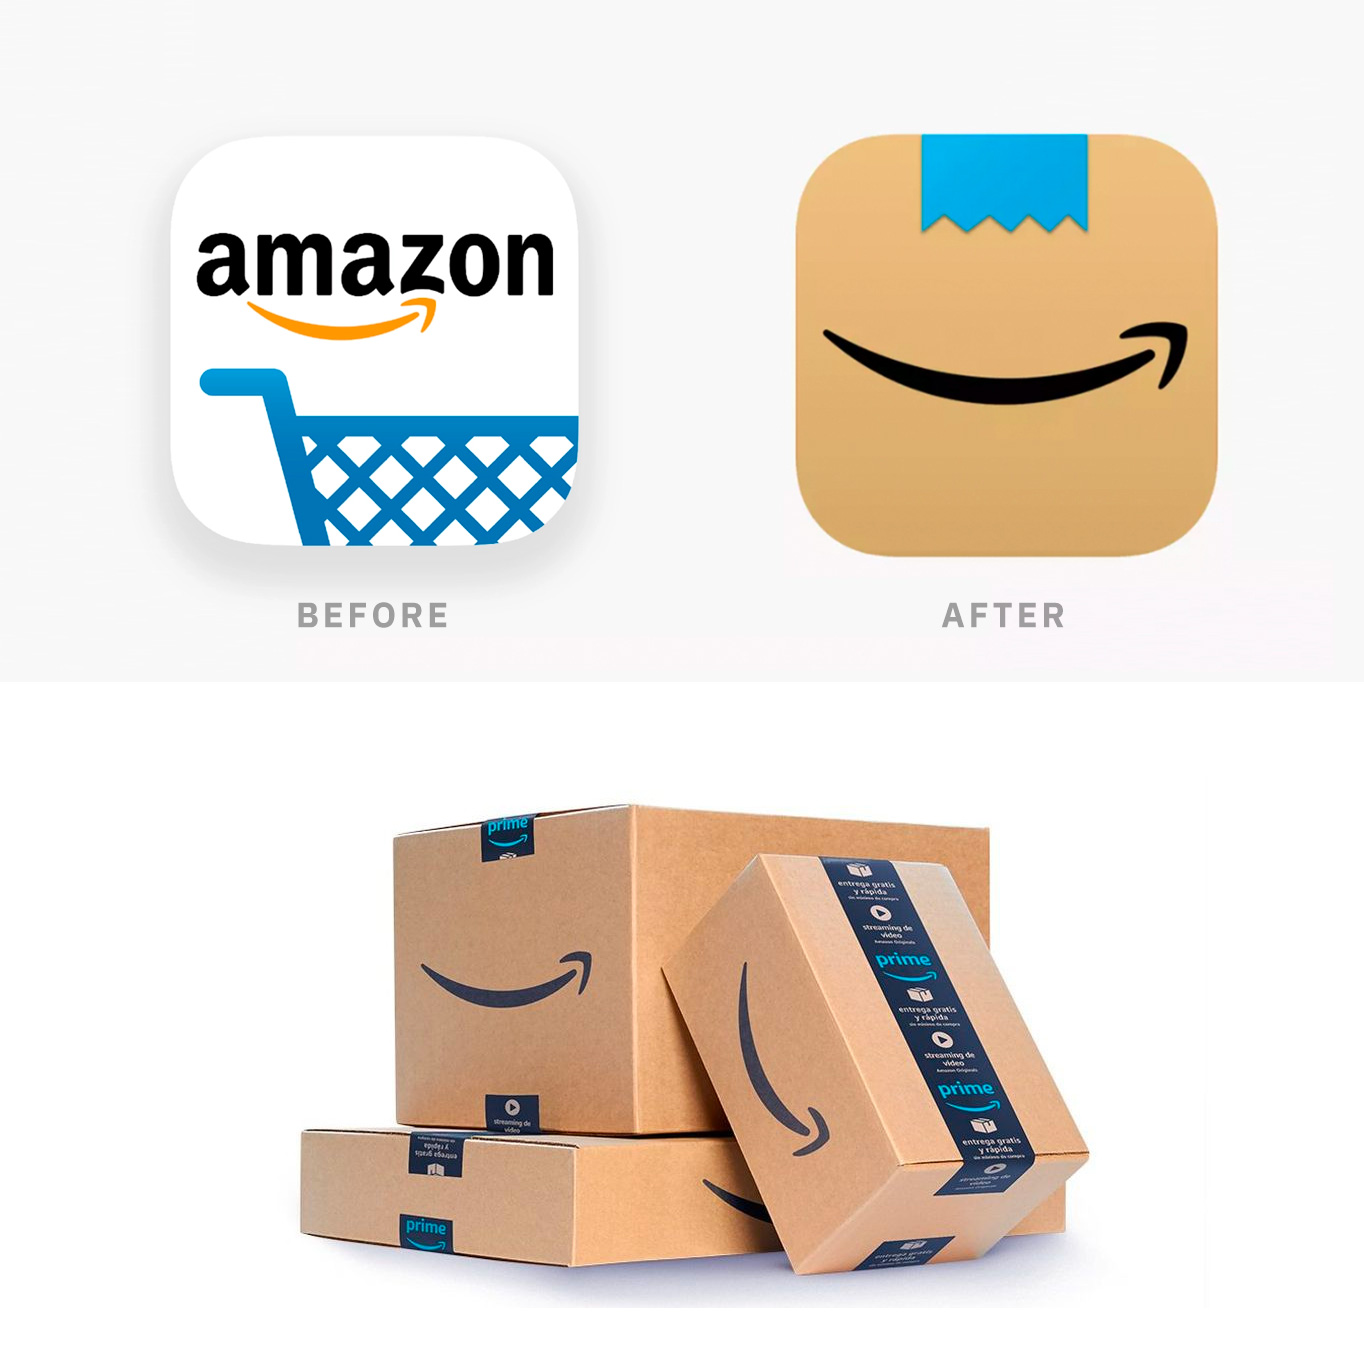 Amazon New App Icon